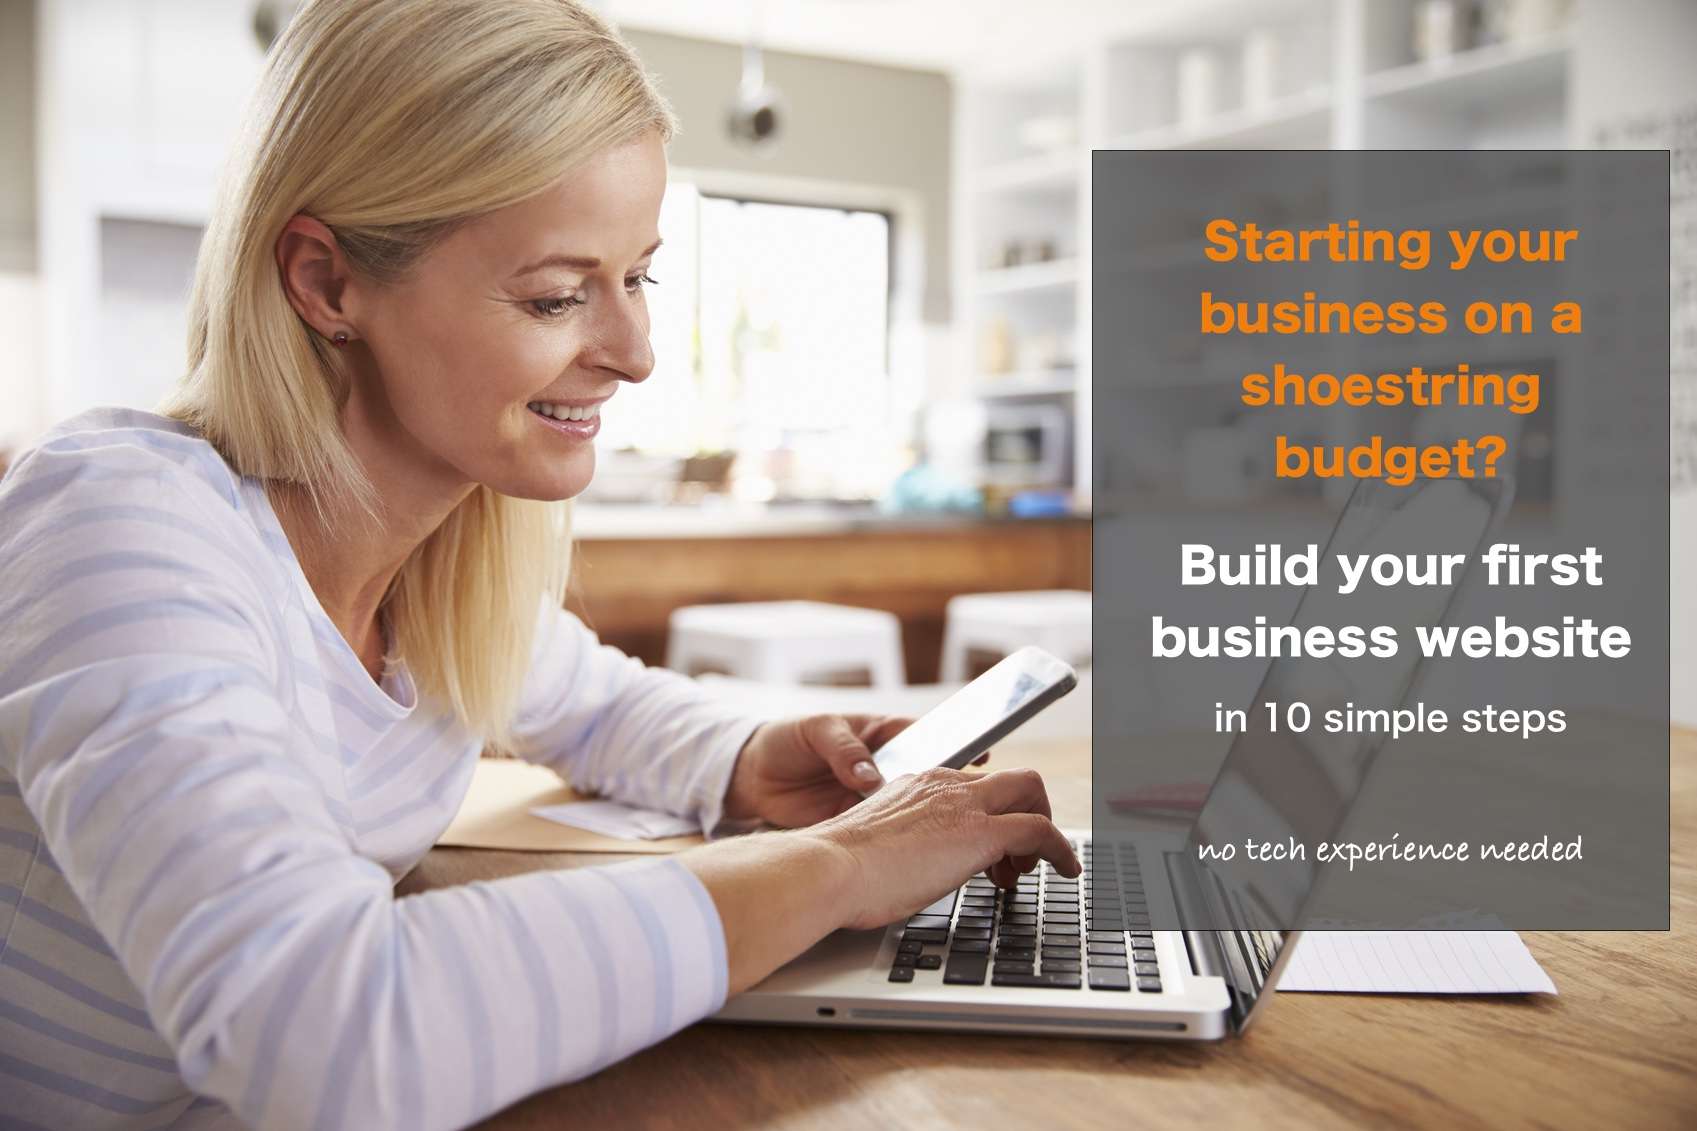 Starting your business on a shoestring budget? Build your first business website in 10 simple steps - no tech experience needed